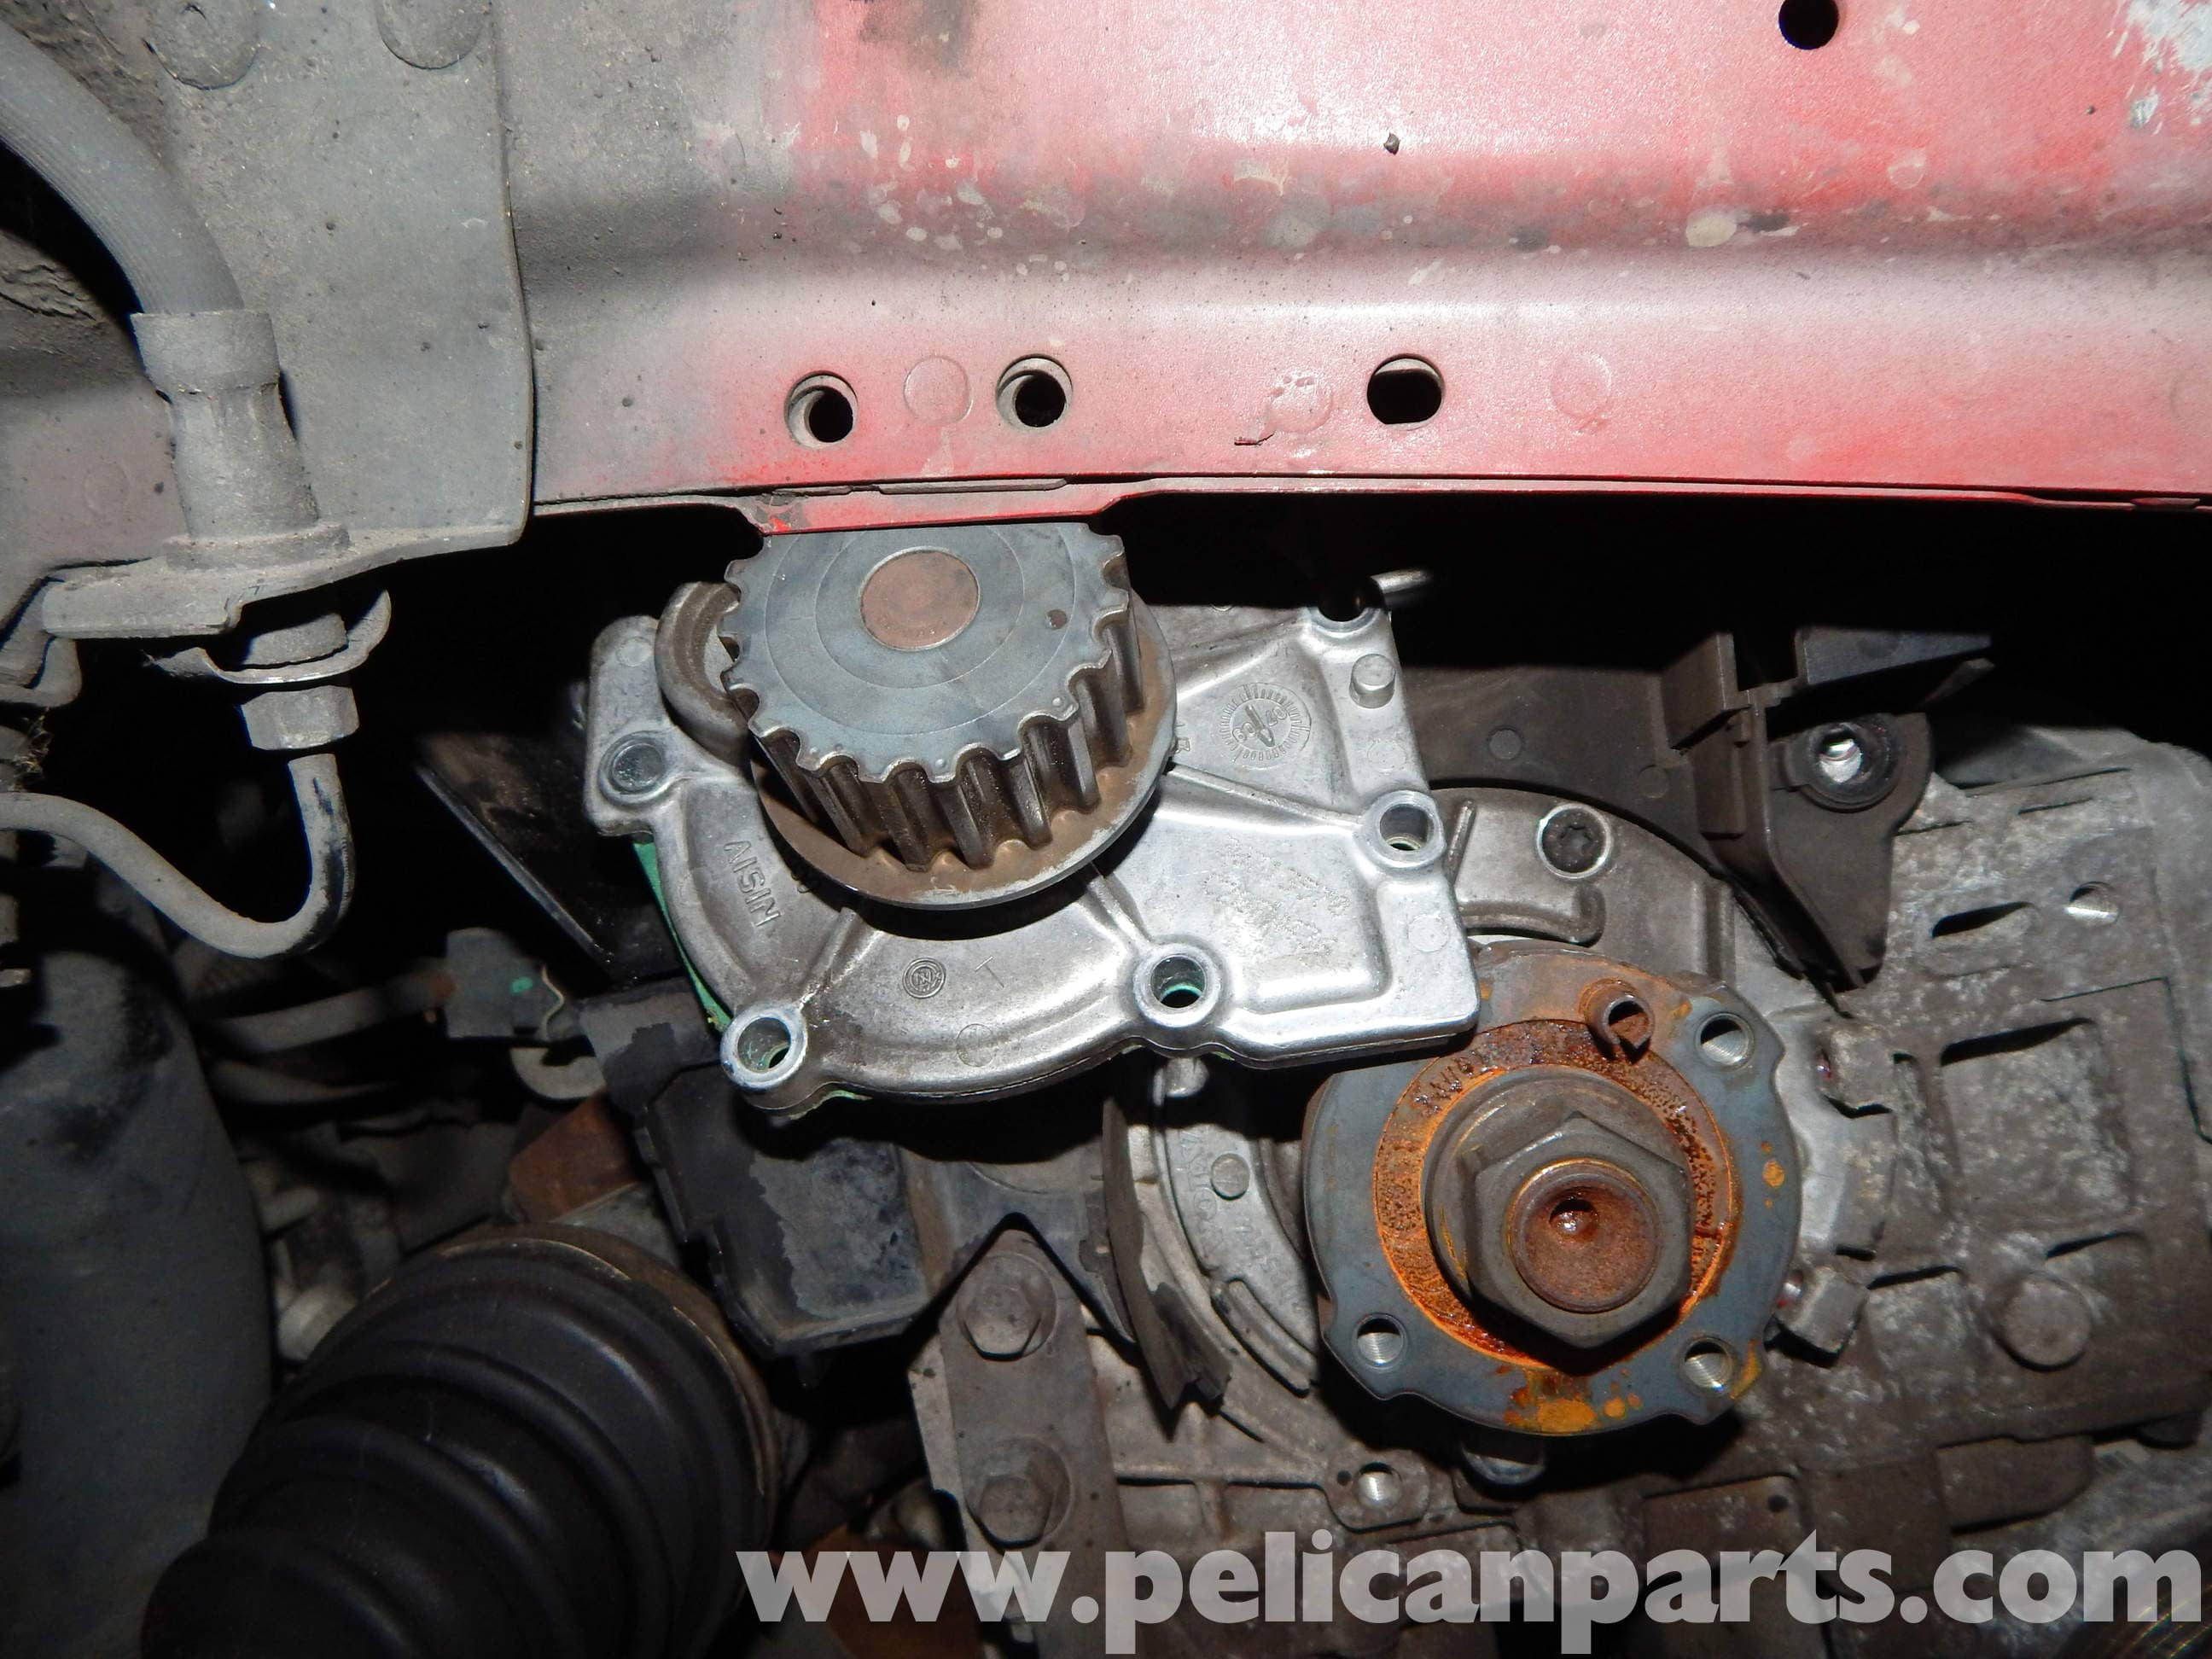 Mini Cooper R56 Stereo Wiring Diagram Volvo C30 Water Pump Replacement 2007 2013 Pelican Parts Diy Large Image Extra